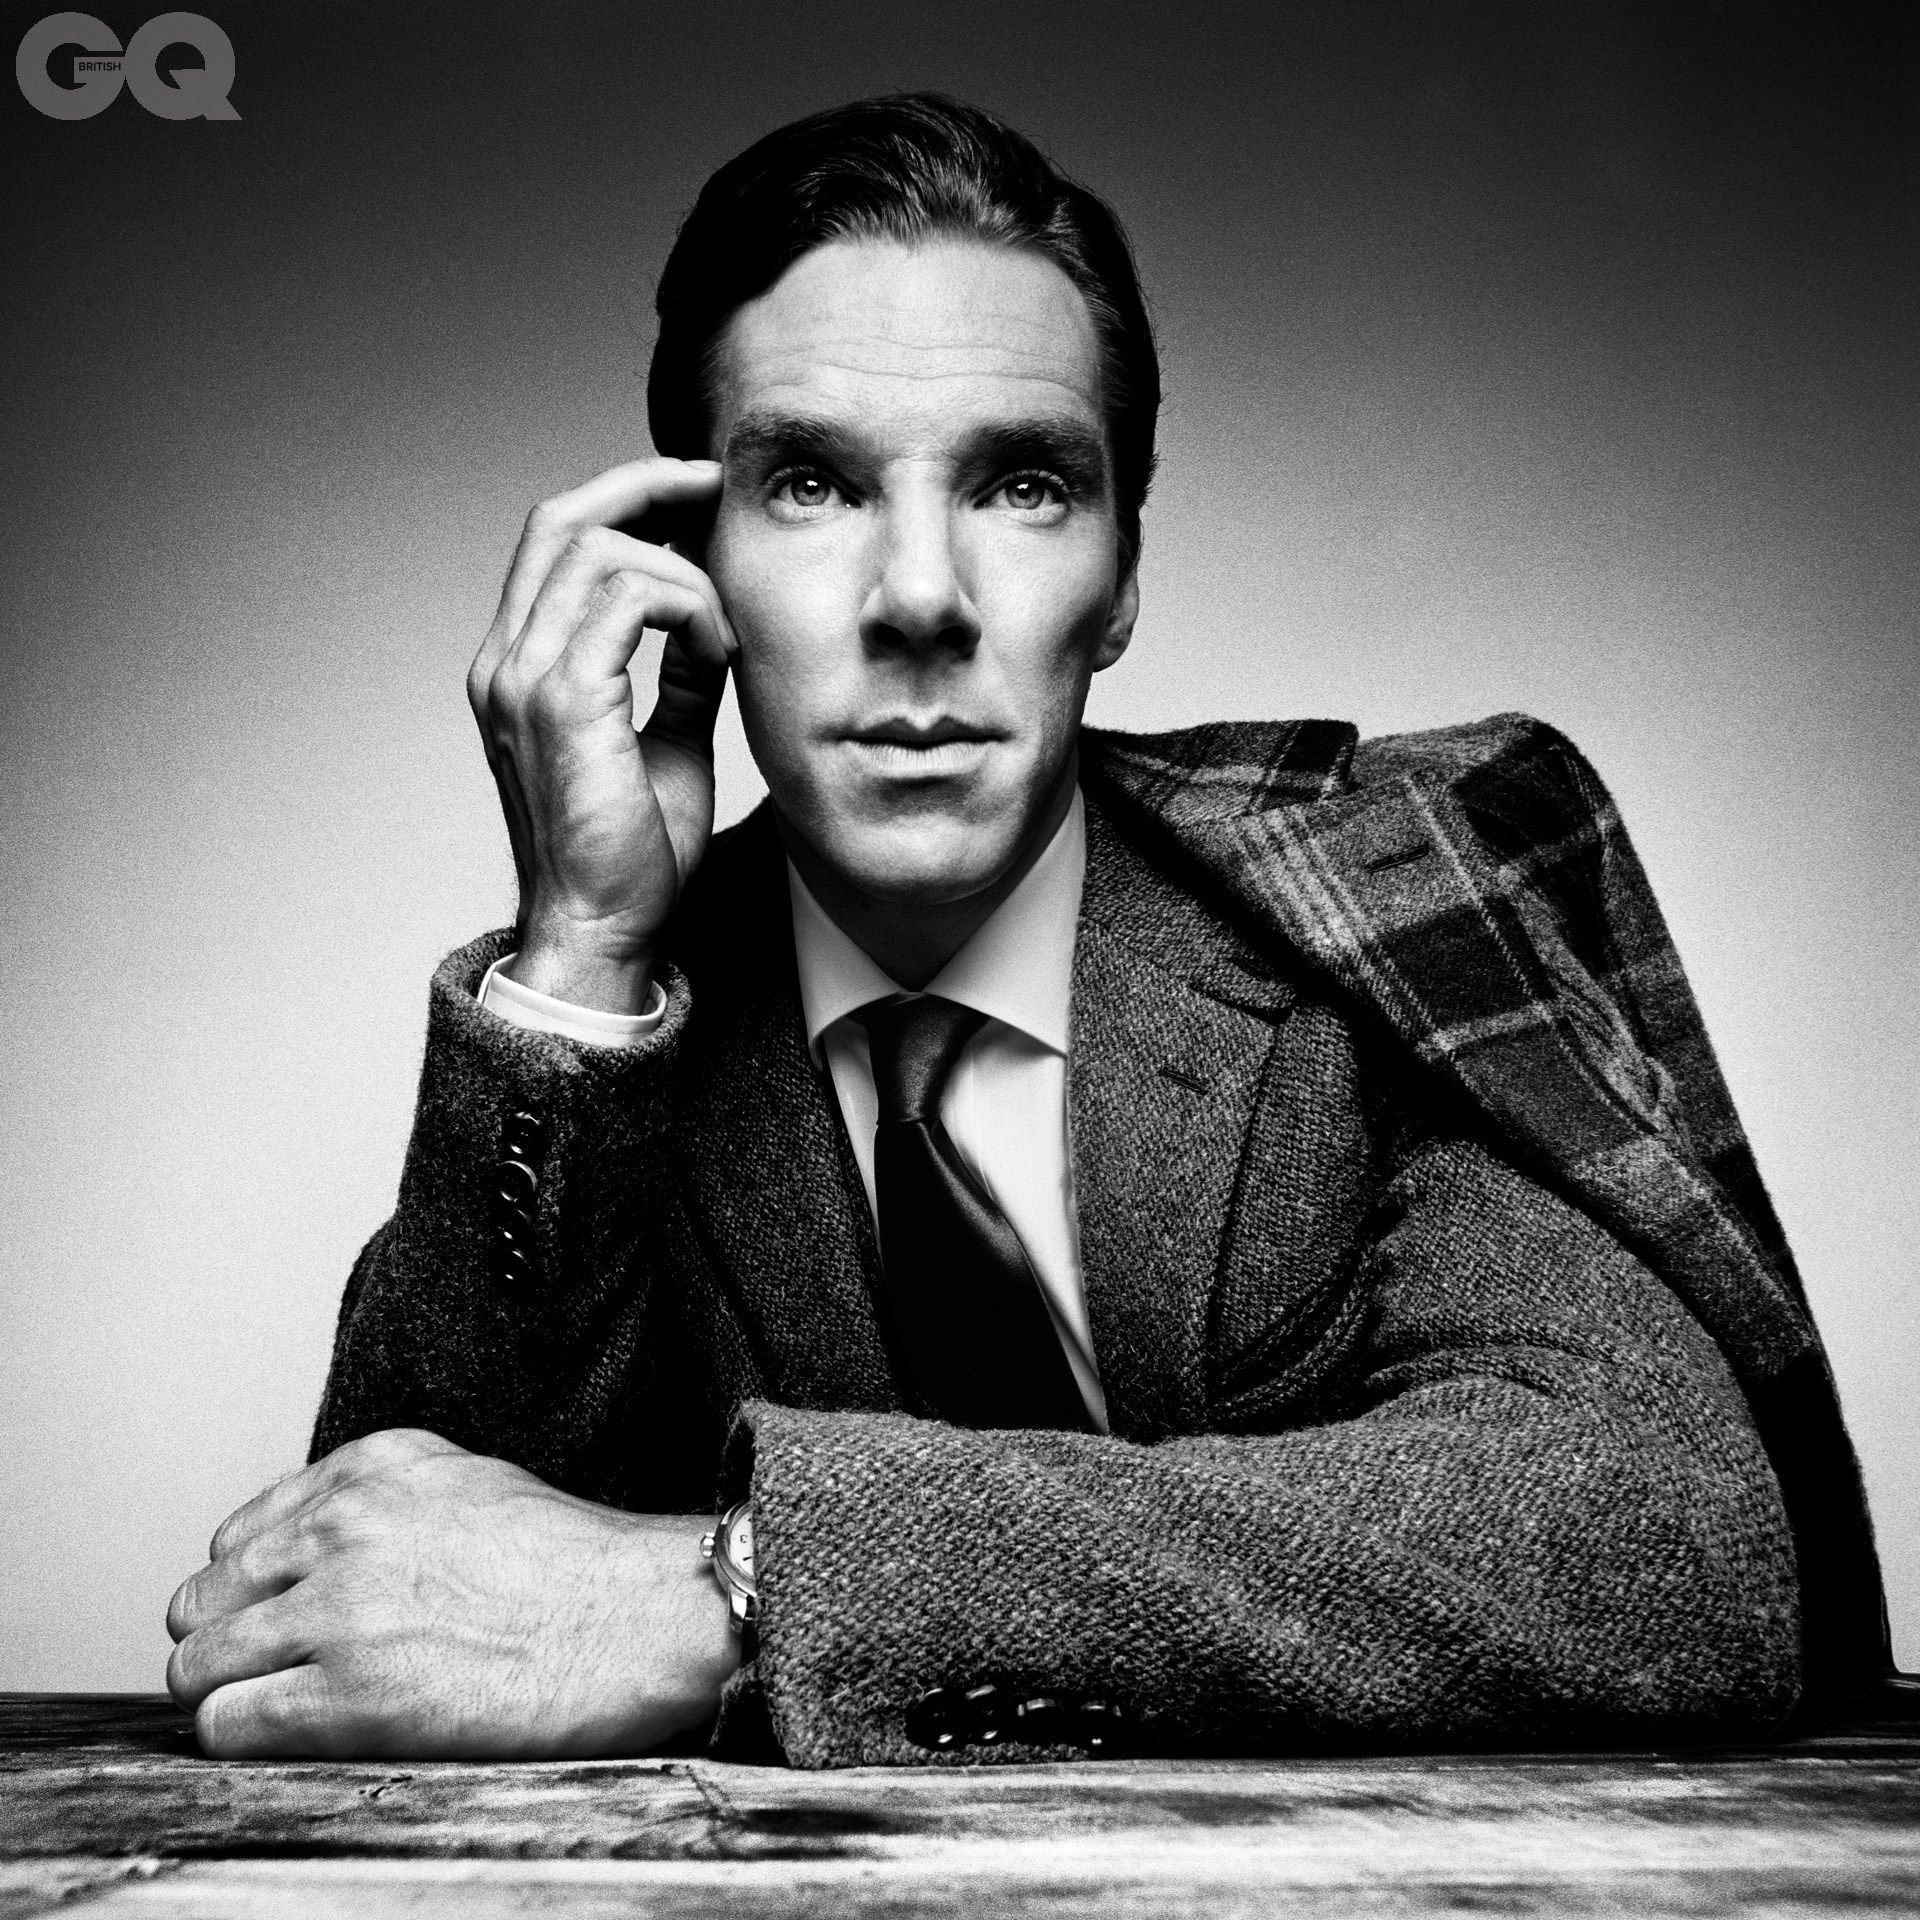 benedict cumberbatch - photo #16